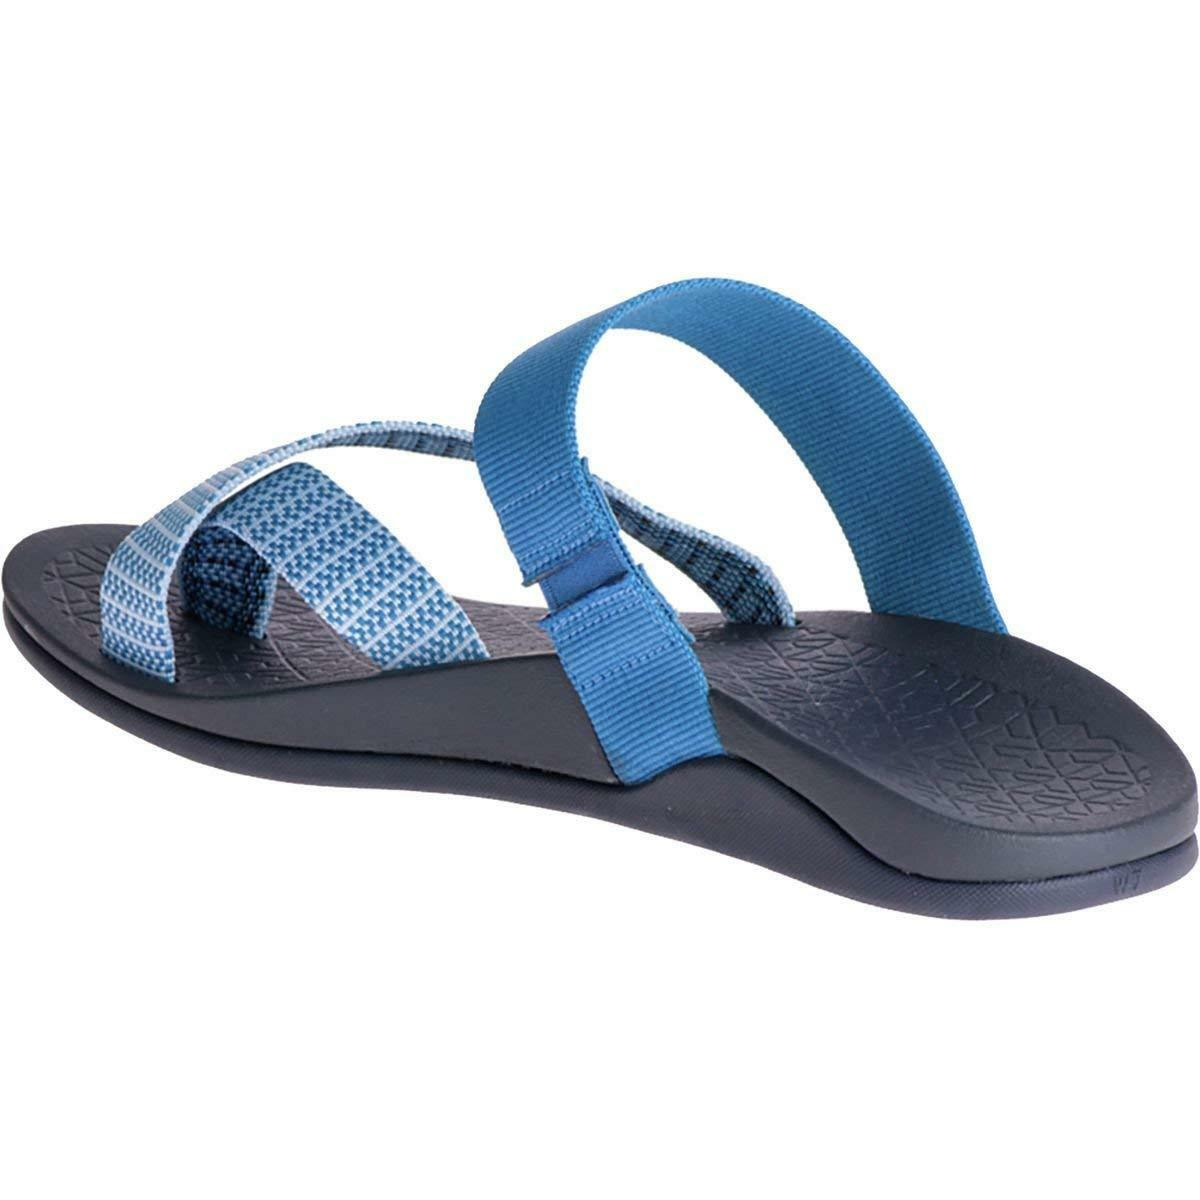 68ae6580c Chaco Women s Tetra Cloud Athletic Sandal Bluebell Eclipse 10 B(m ...